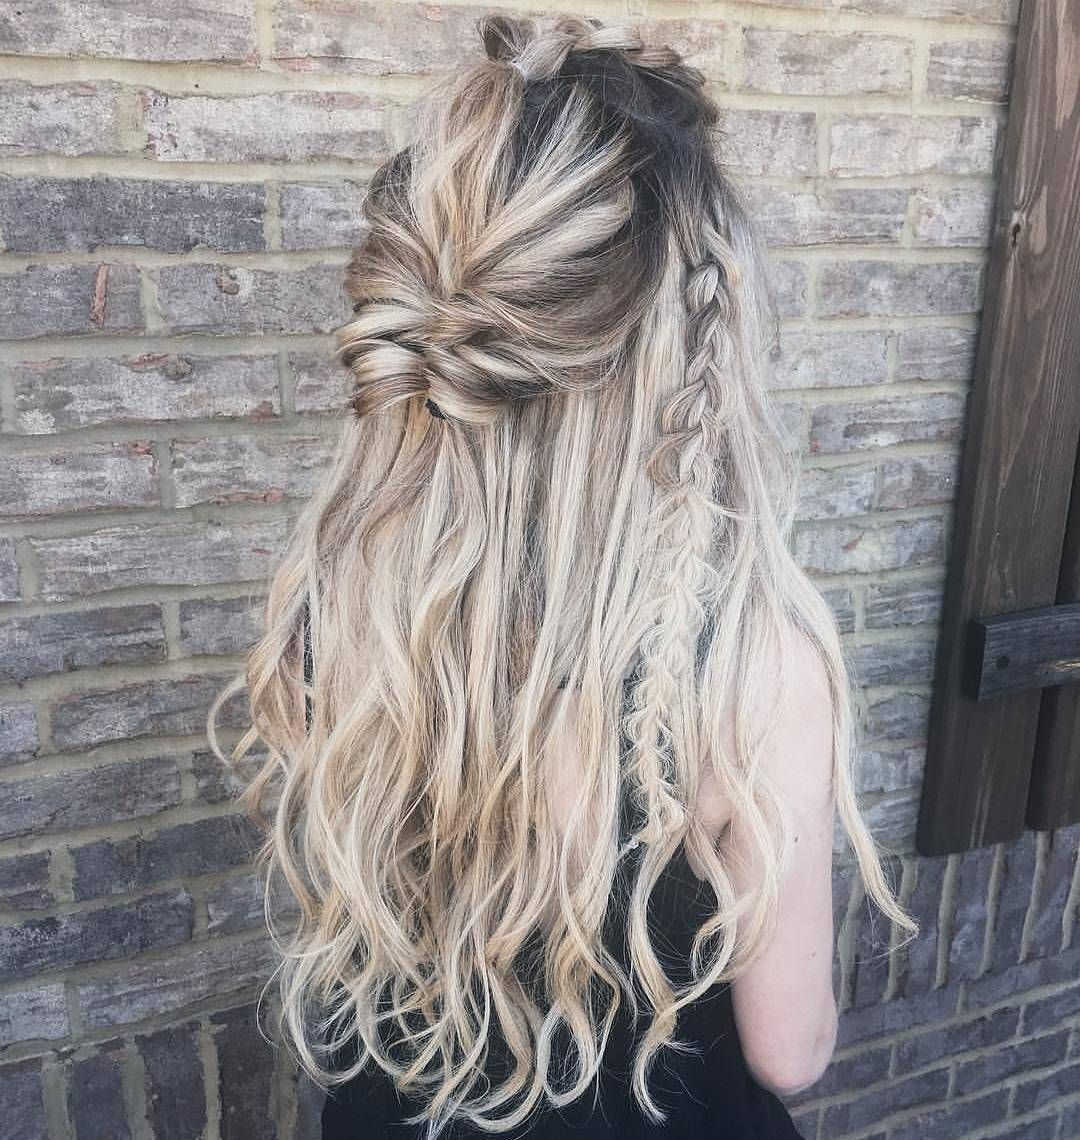 16 of Today's Exquisite 👌🏼 Hair Inspo for Hair-obsessed 💇🏻 Girls Everywhere 🌎 ... → Community